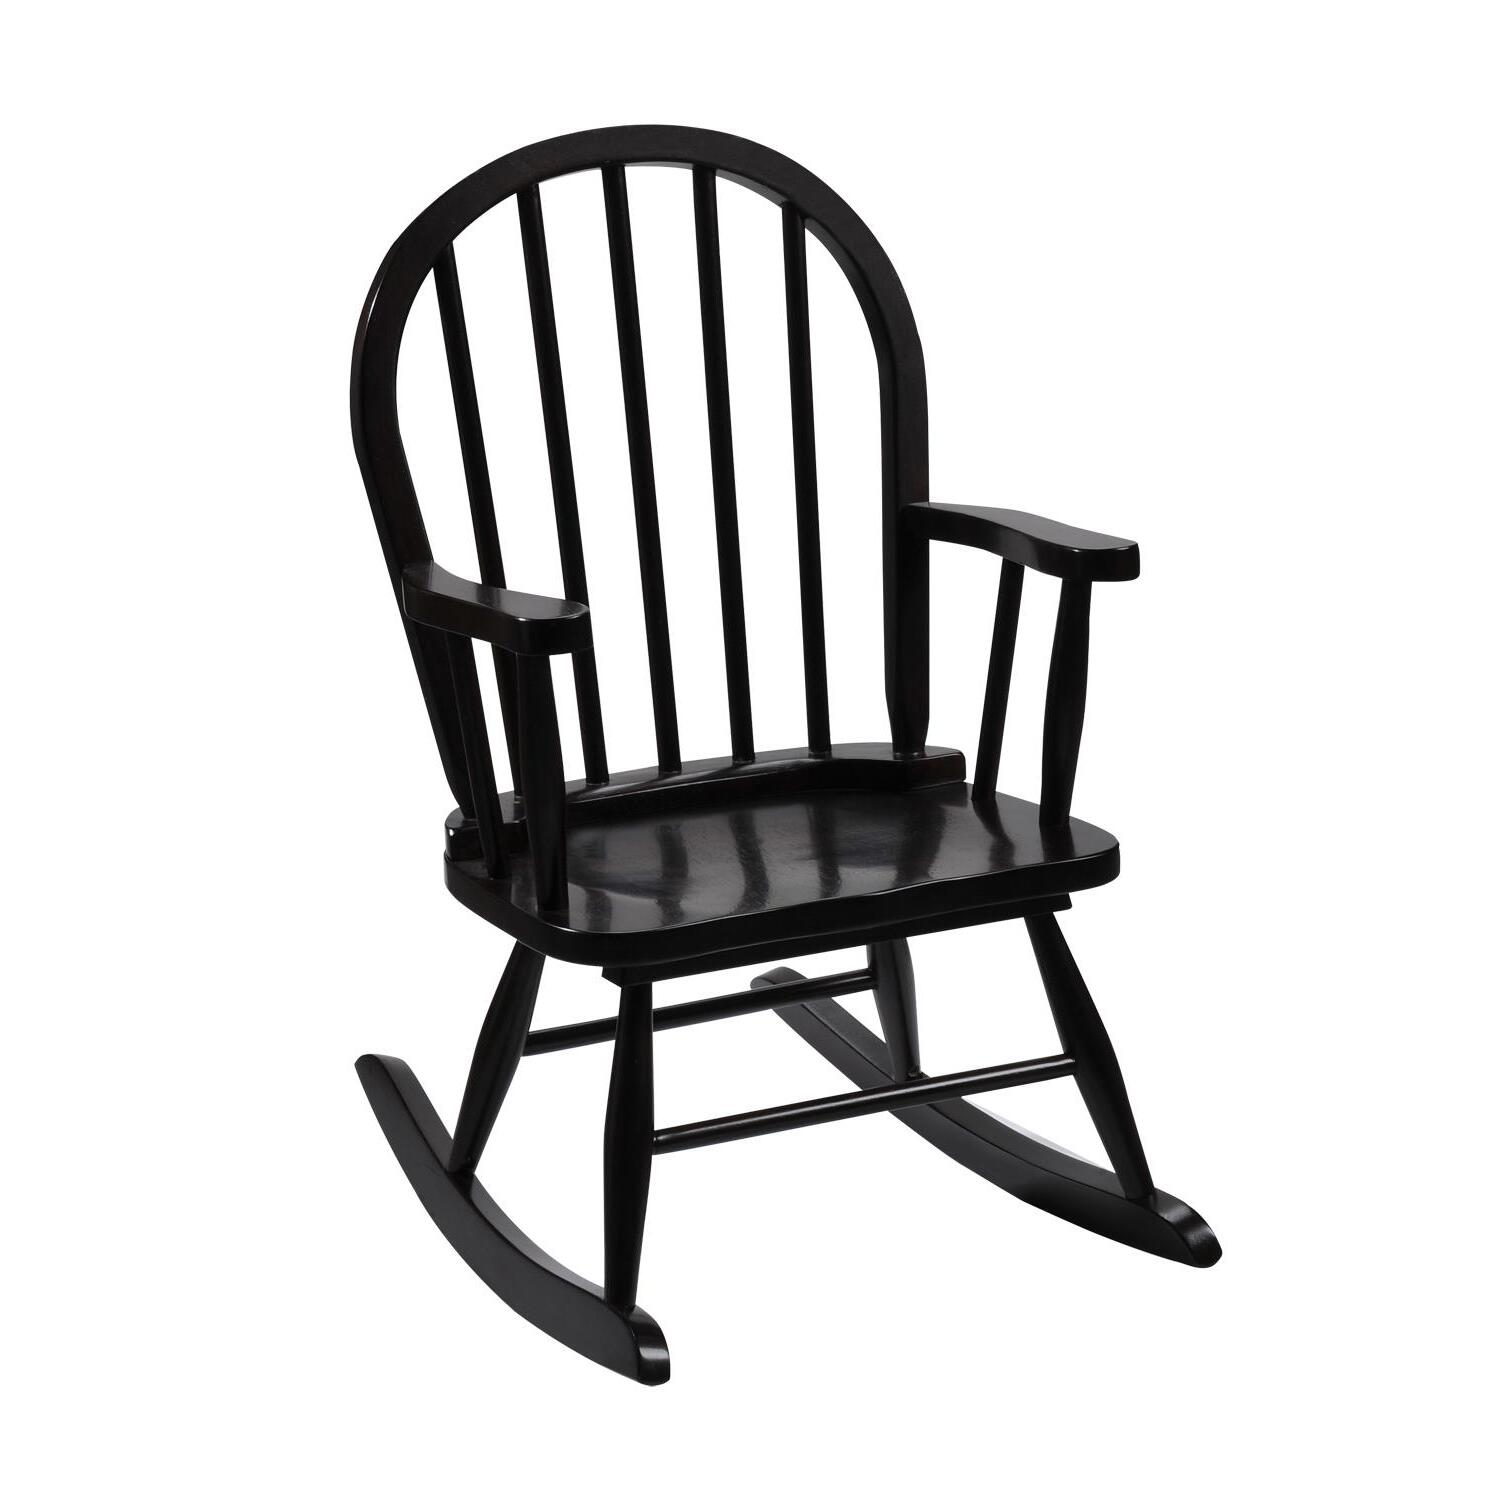 kids wooden rocking chair ergonomic sydney giftmark windsor childrens from 66 91 to